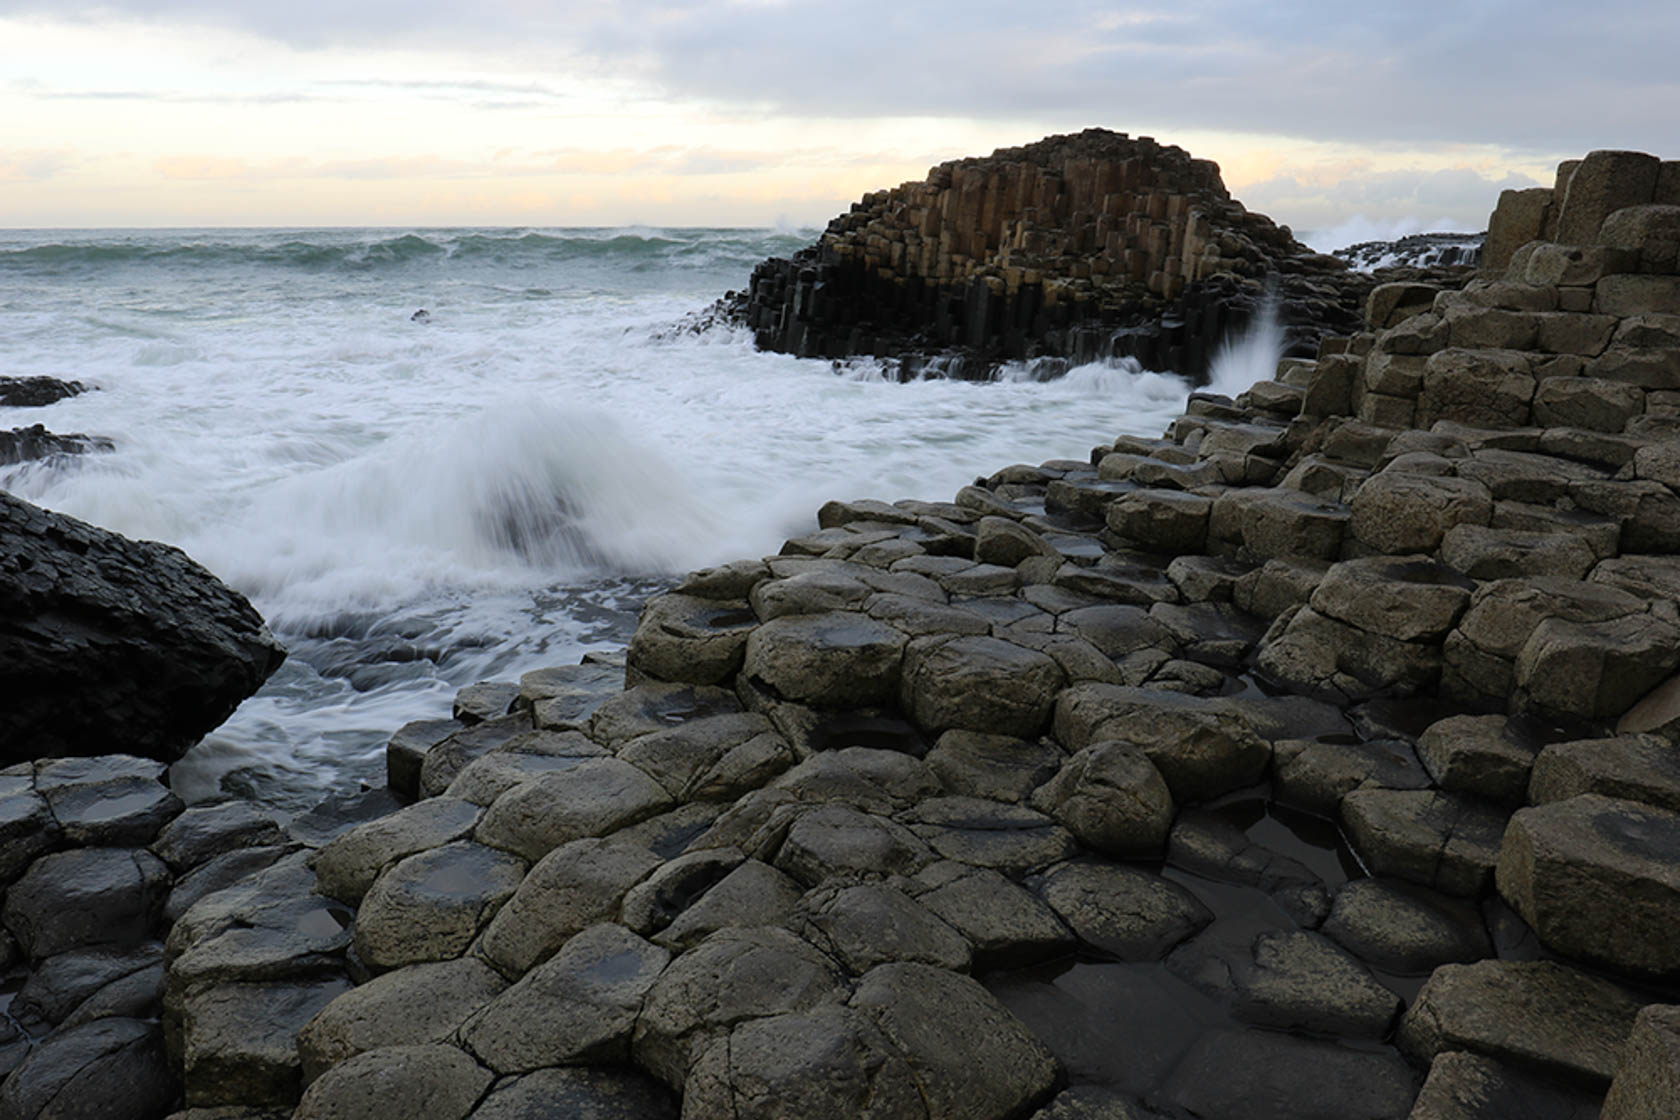 Waves crashing on rocks taken with the Canon EOS 750D digital SLR camera